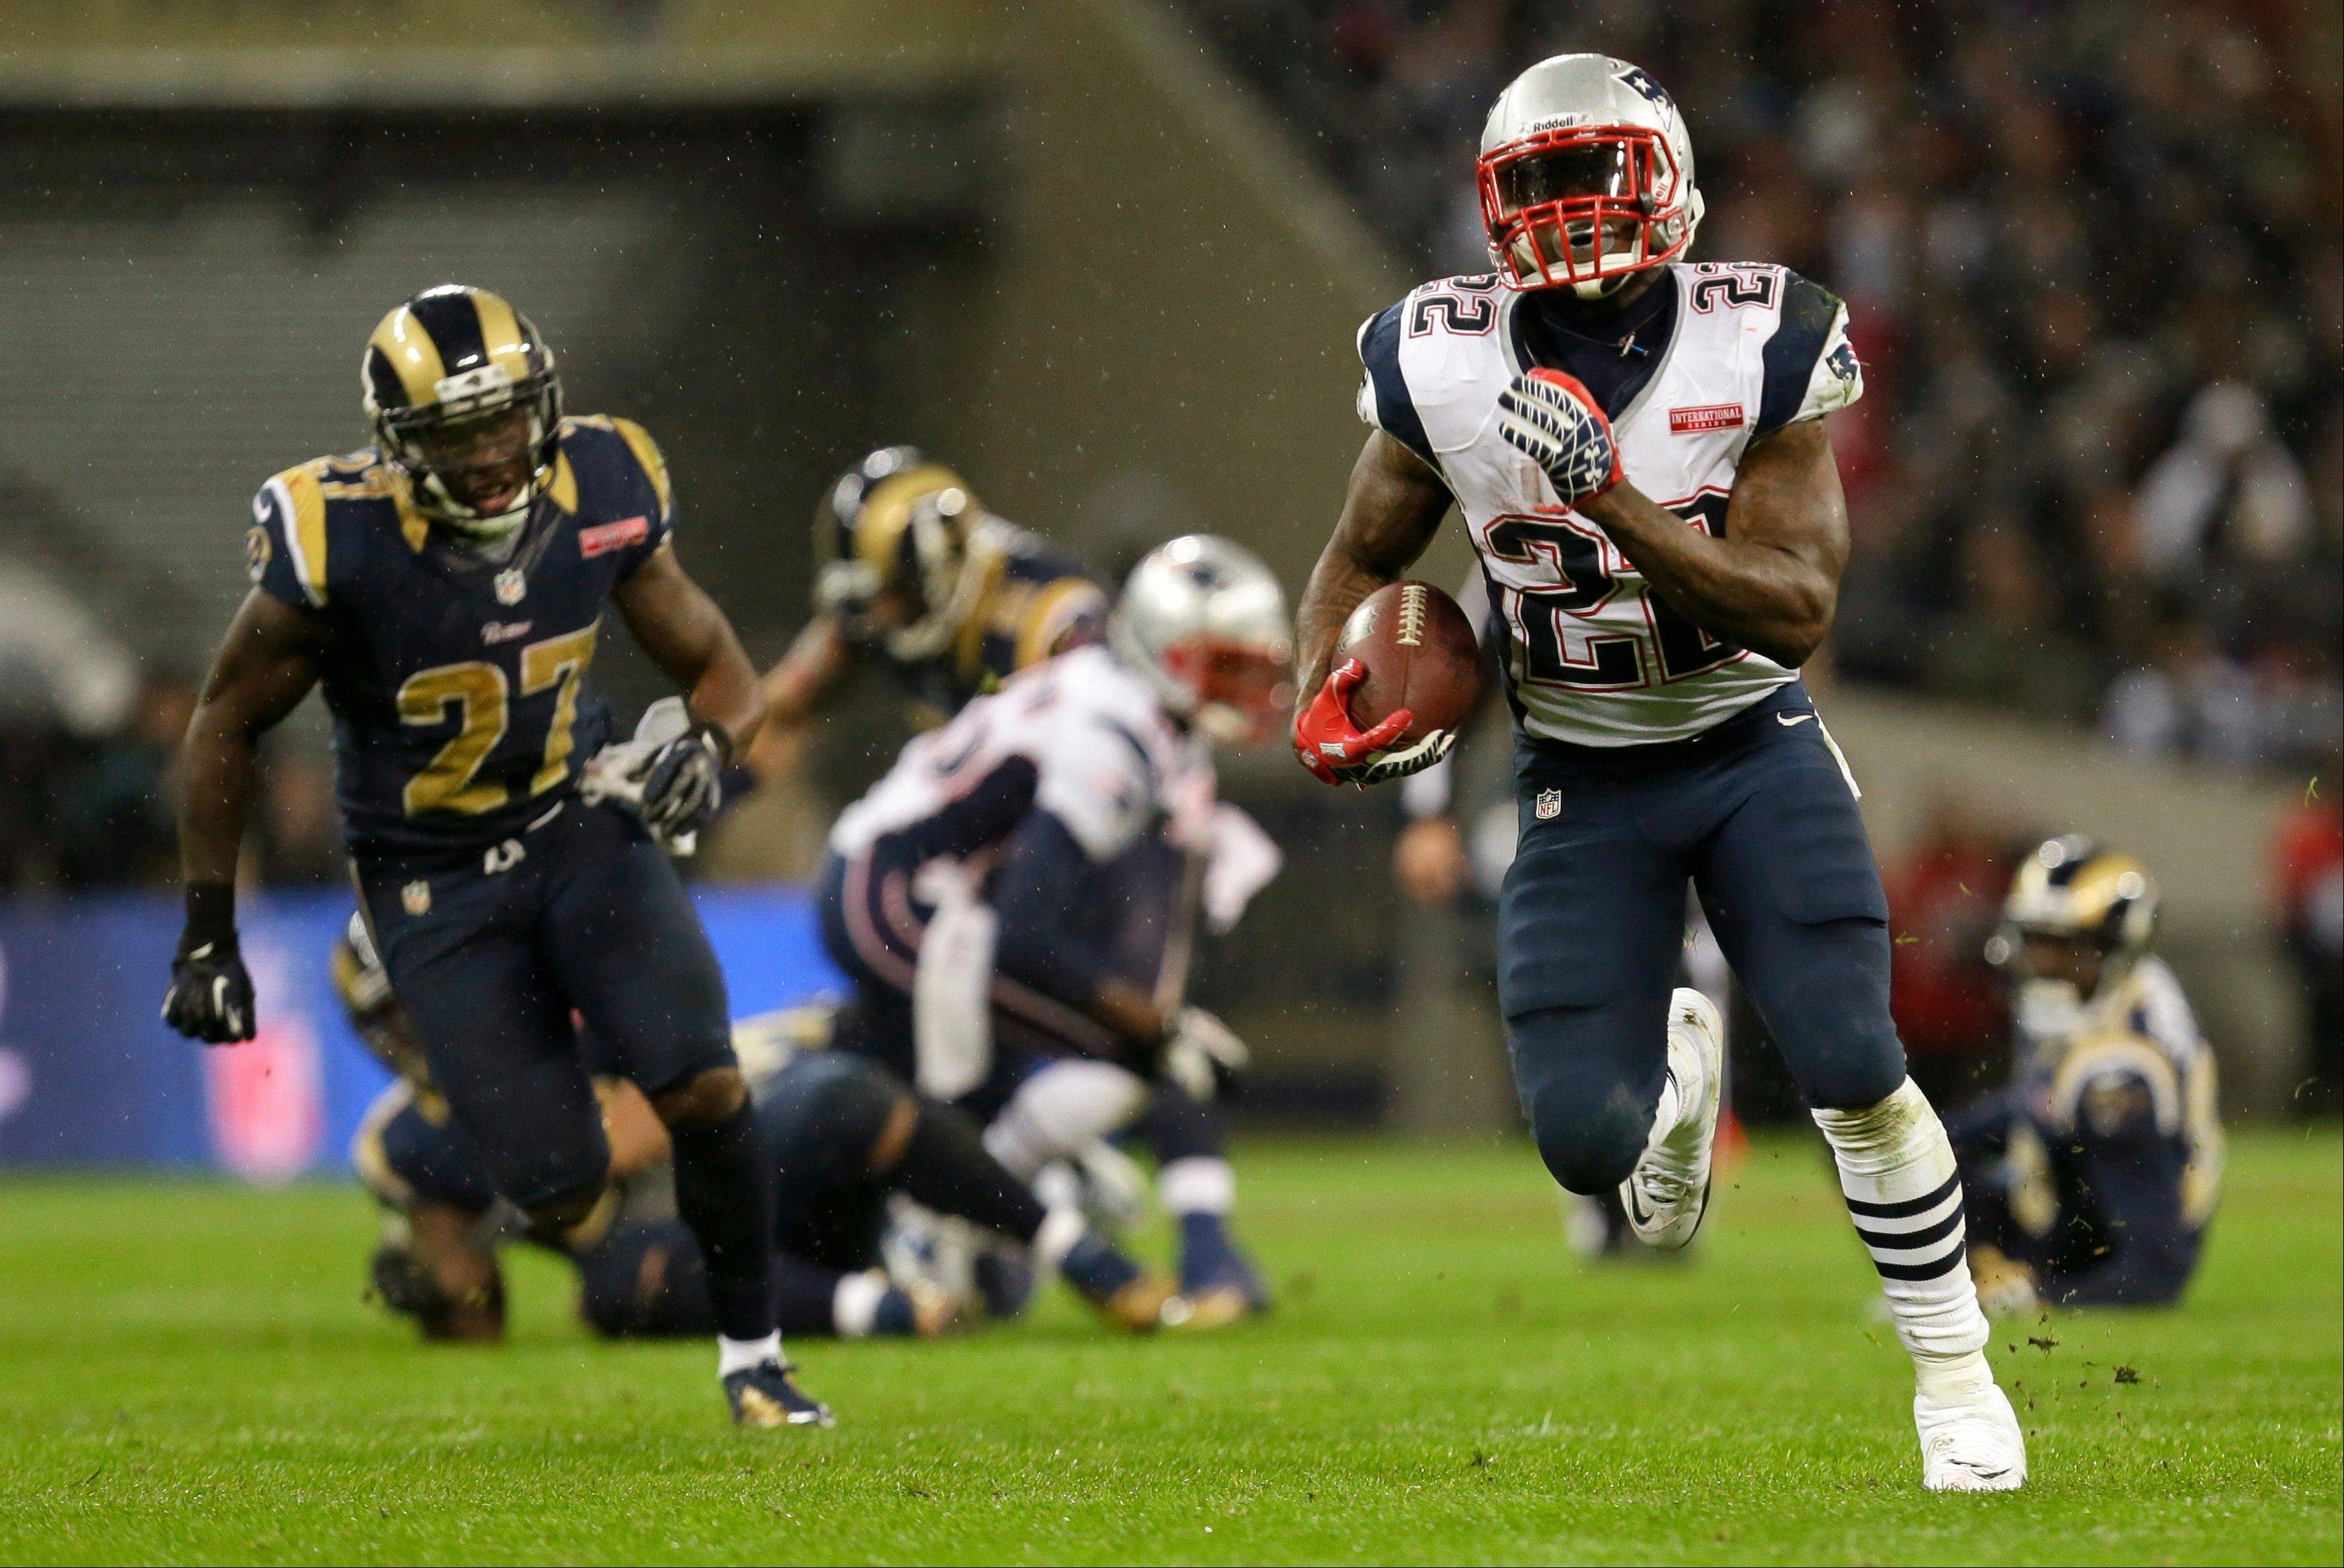 New England Patriots running back Stevan Ridley, right, with St. Louis Rams free safety Quintin Mikell, left, in action during the second half of a NFL football game at Wembley Stadium, London, Sunday.